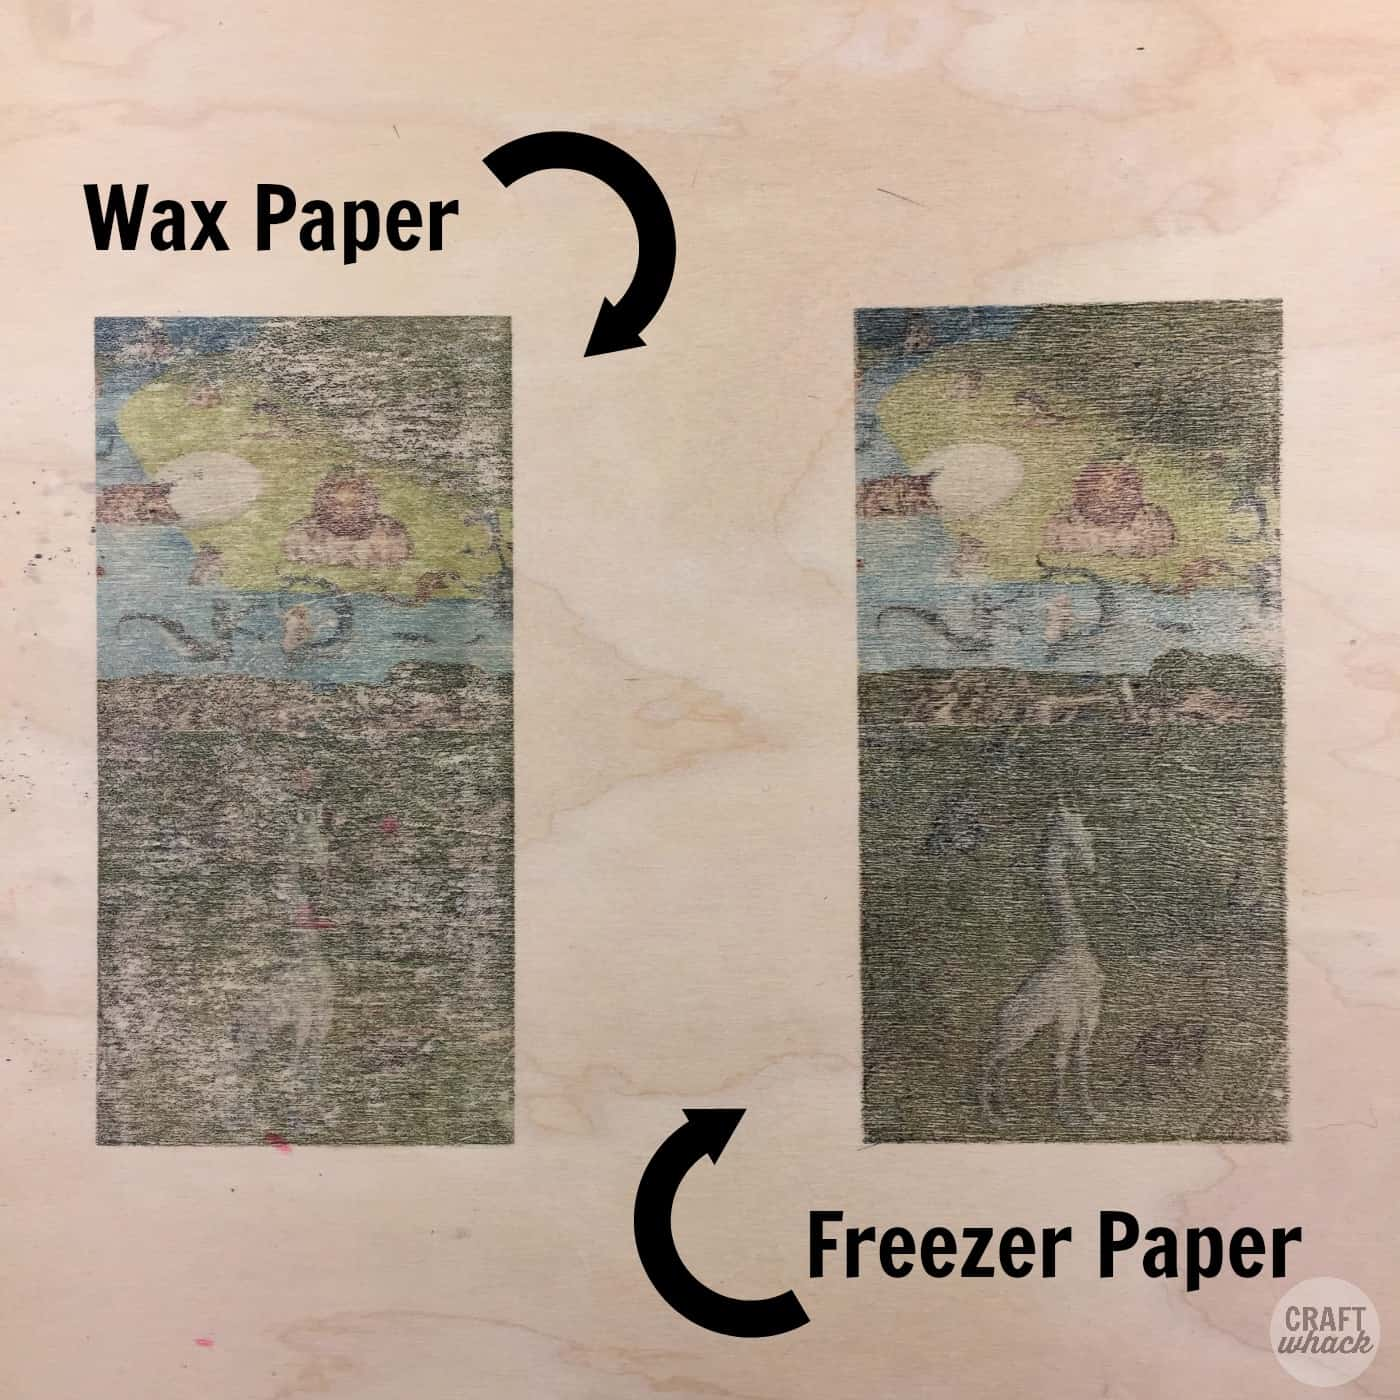 wax paper vs. freezer paper images on wood